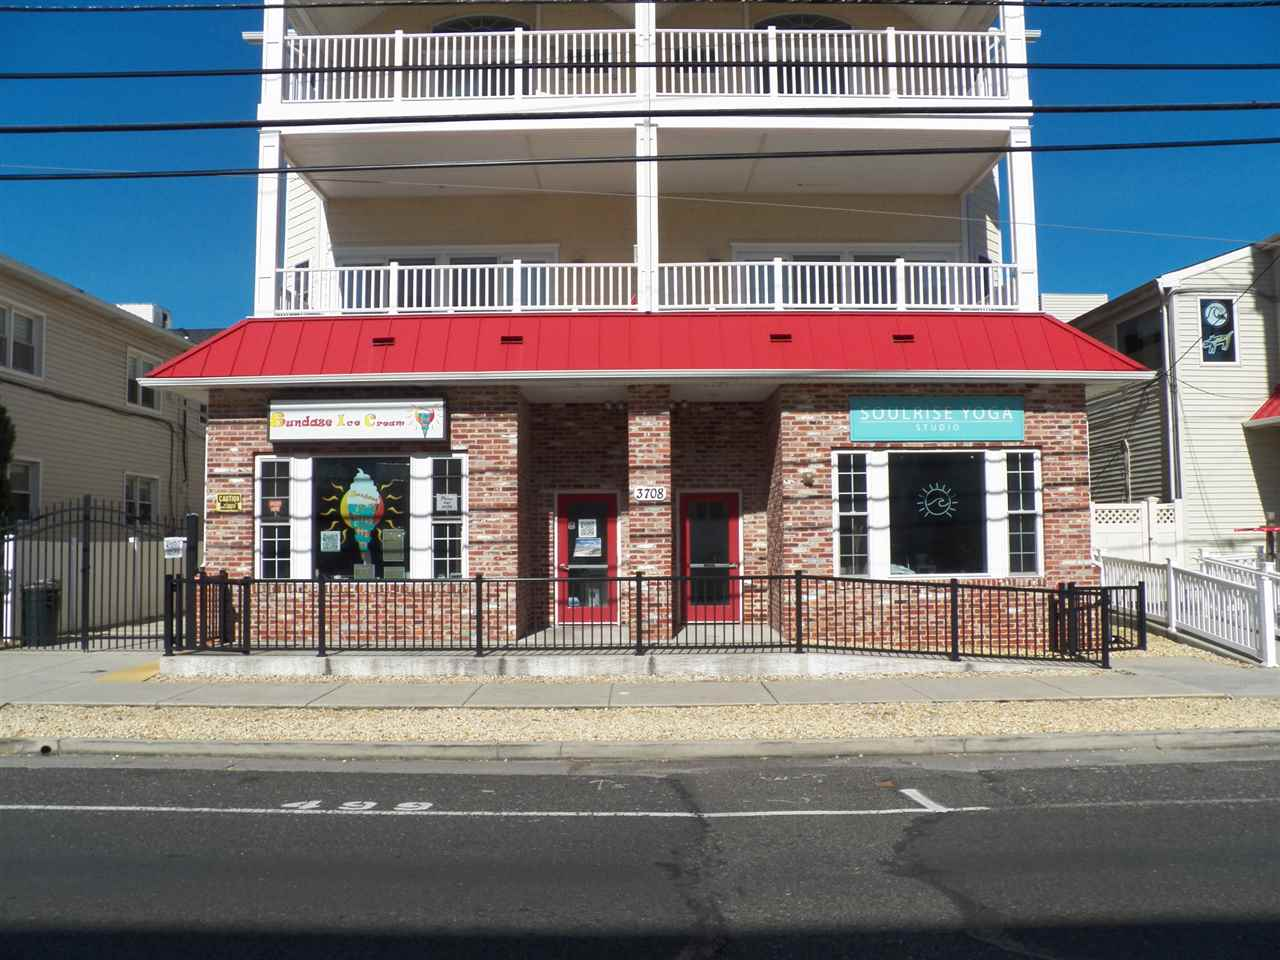 3708 Landis Ave, Sea Isle City